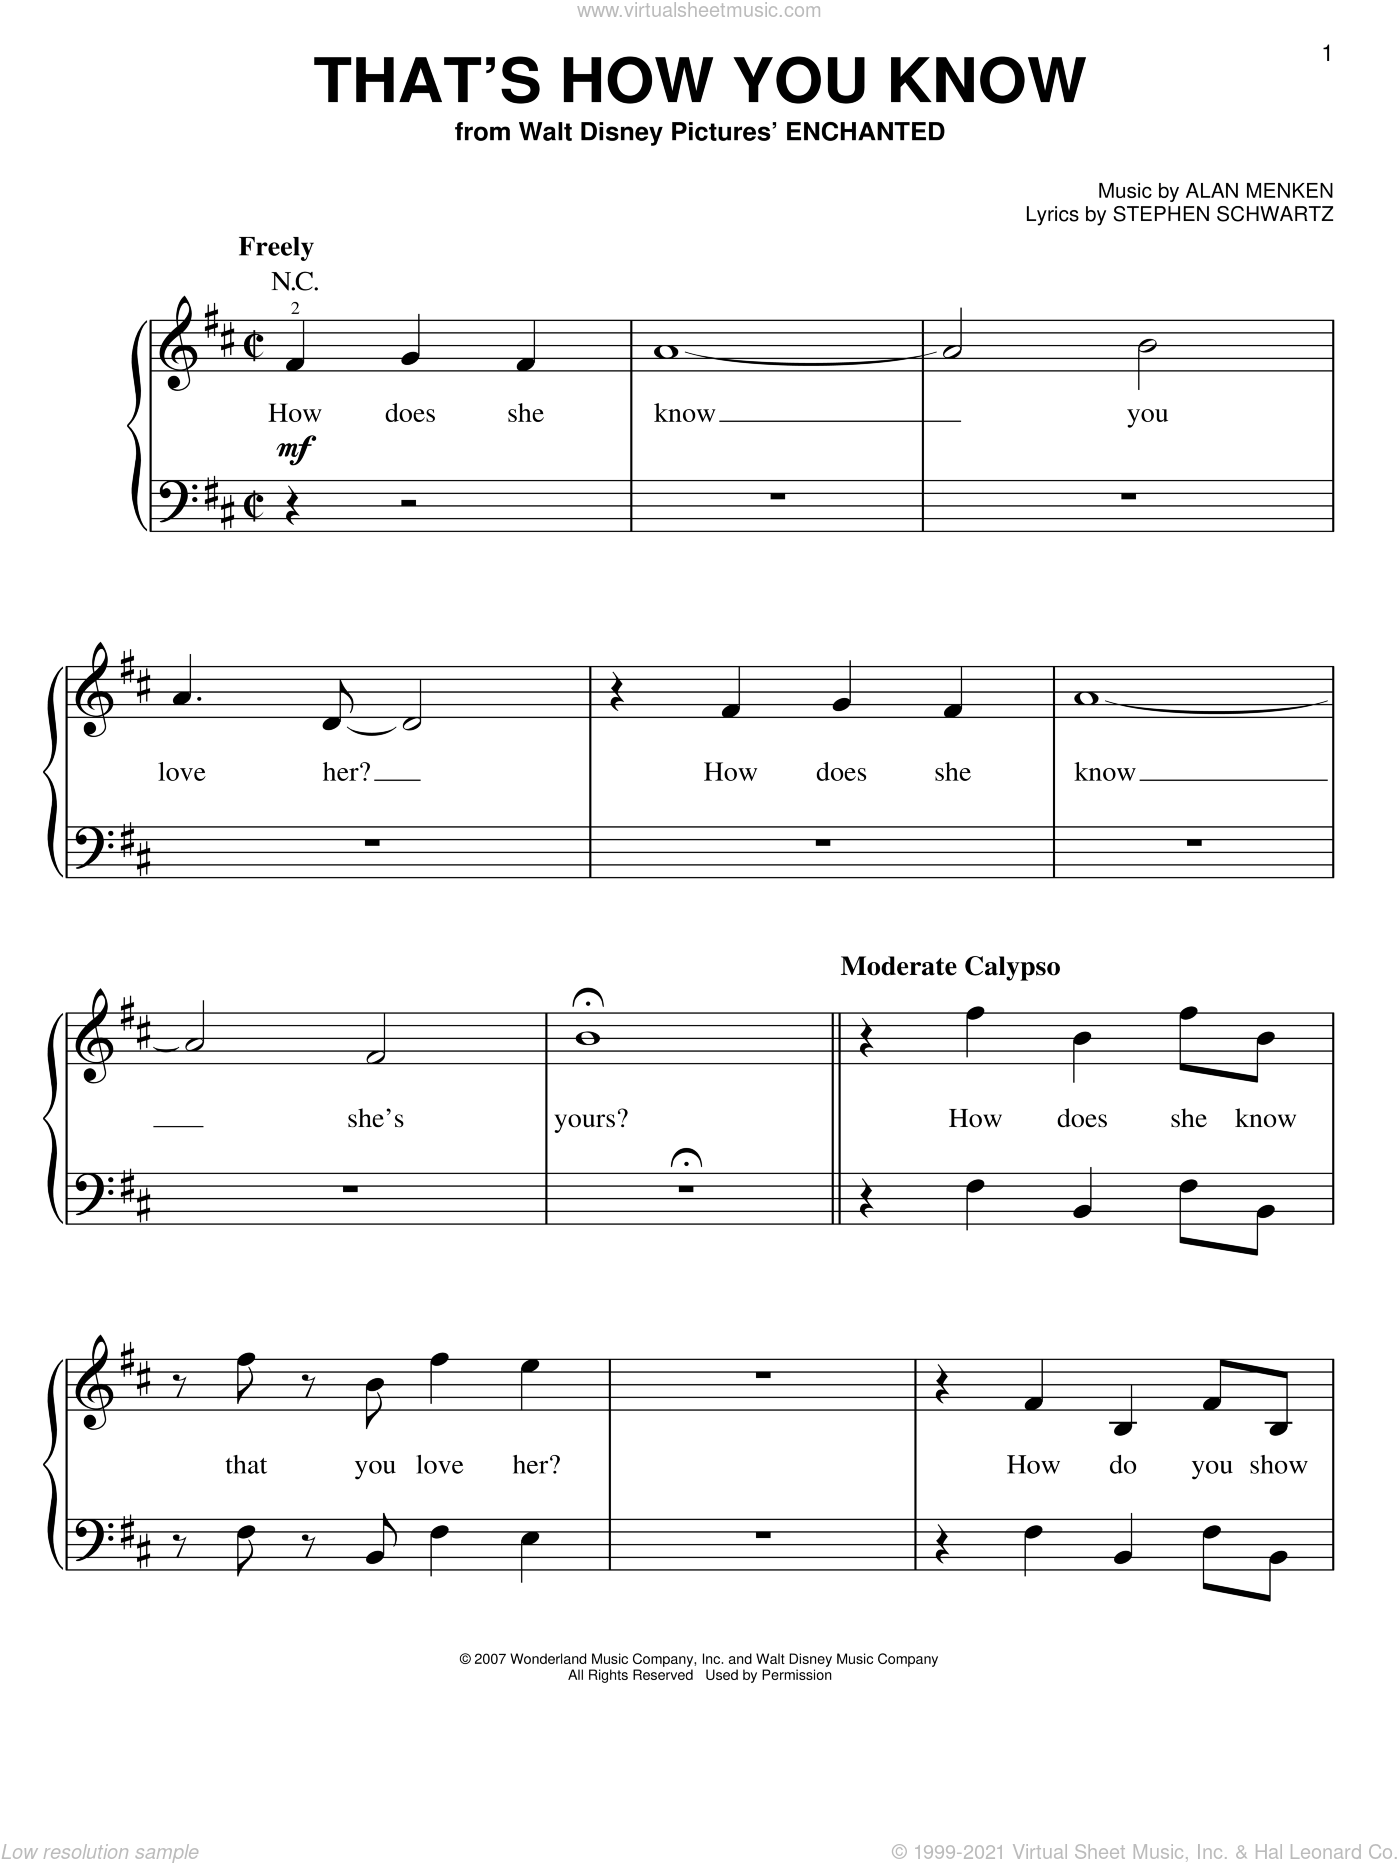 That's How You Know sheet music for piano solo by Amy Adams, Enchanted (Movie), Alan Menken and Stephen Schwartz, easy skill level